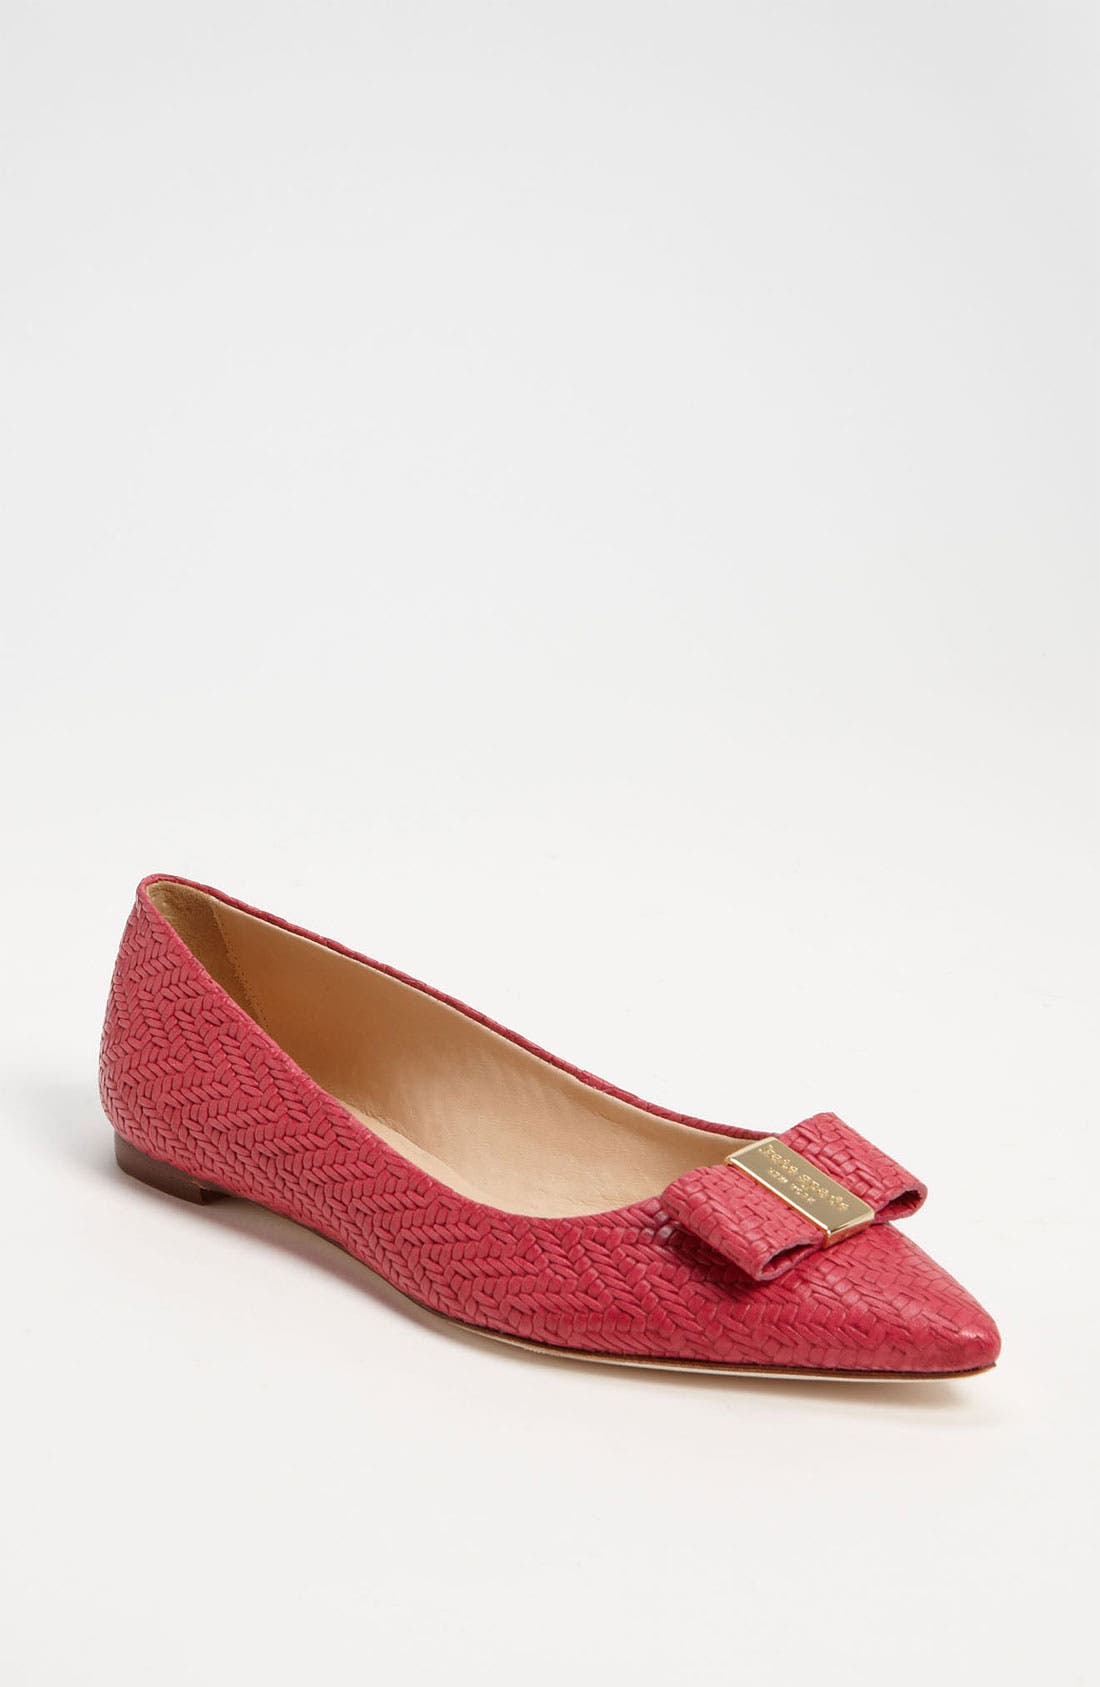 Main Image - kate spade new york 'gabriella' flat